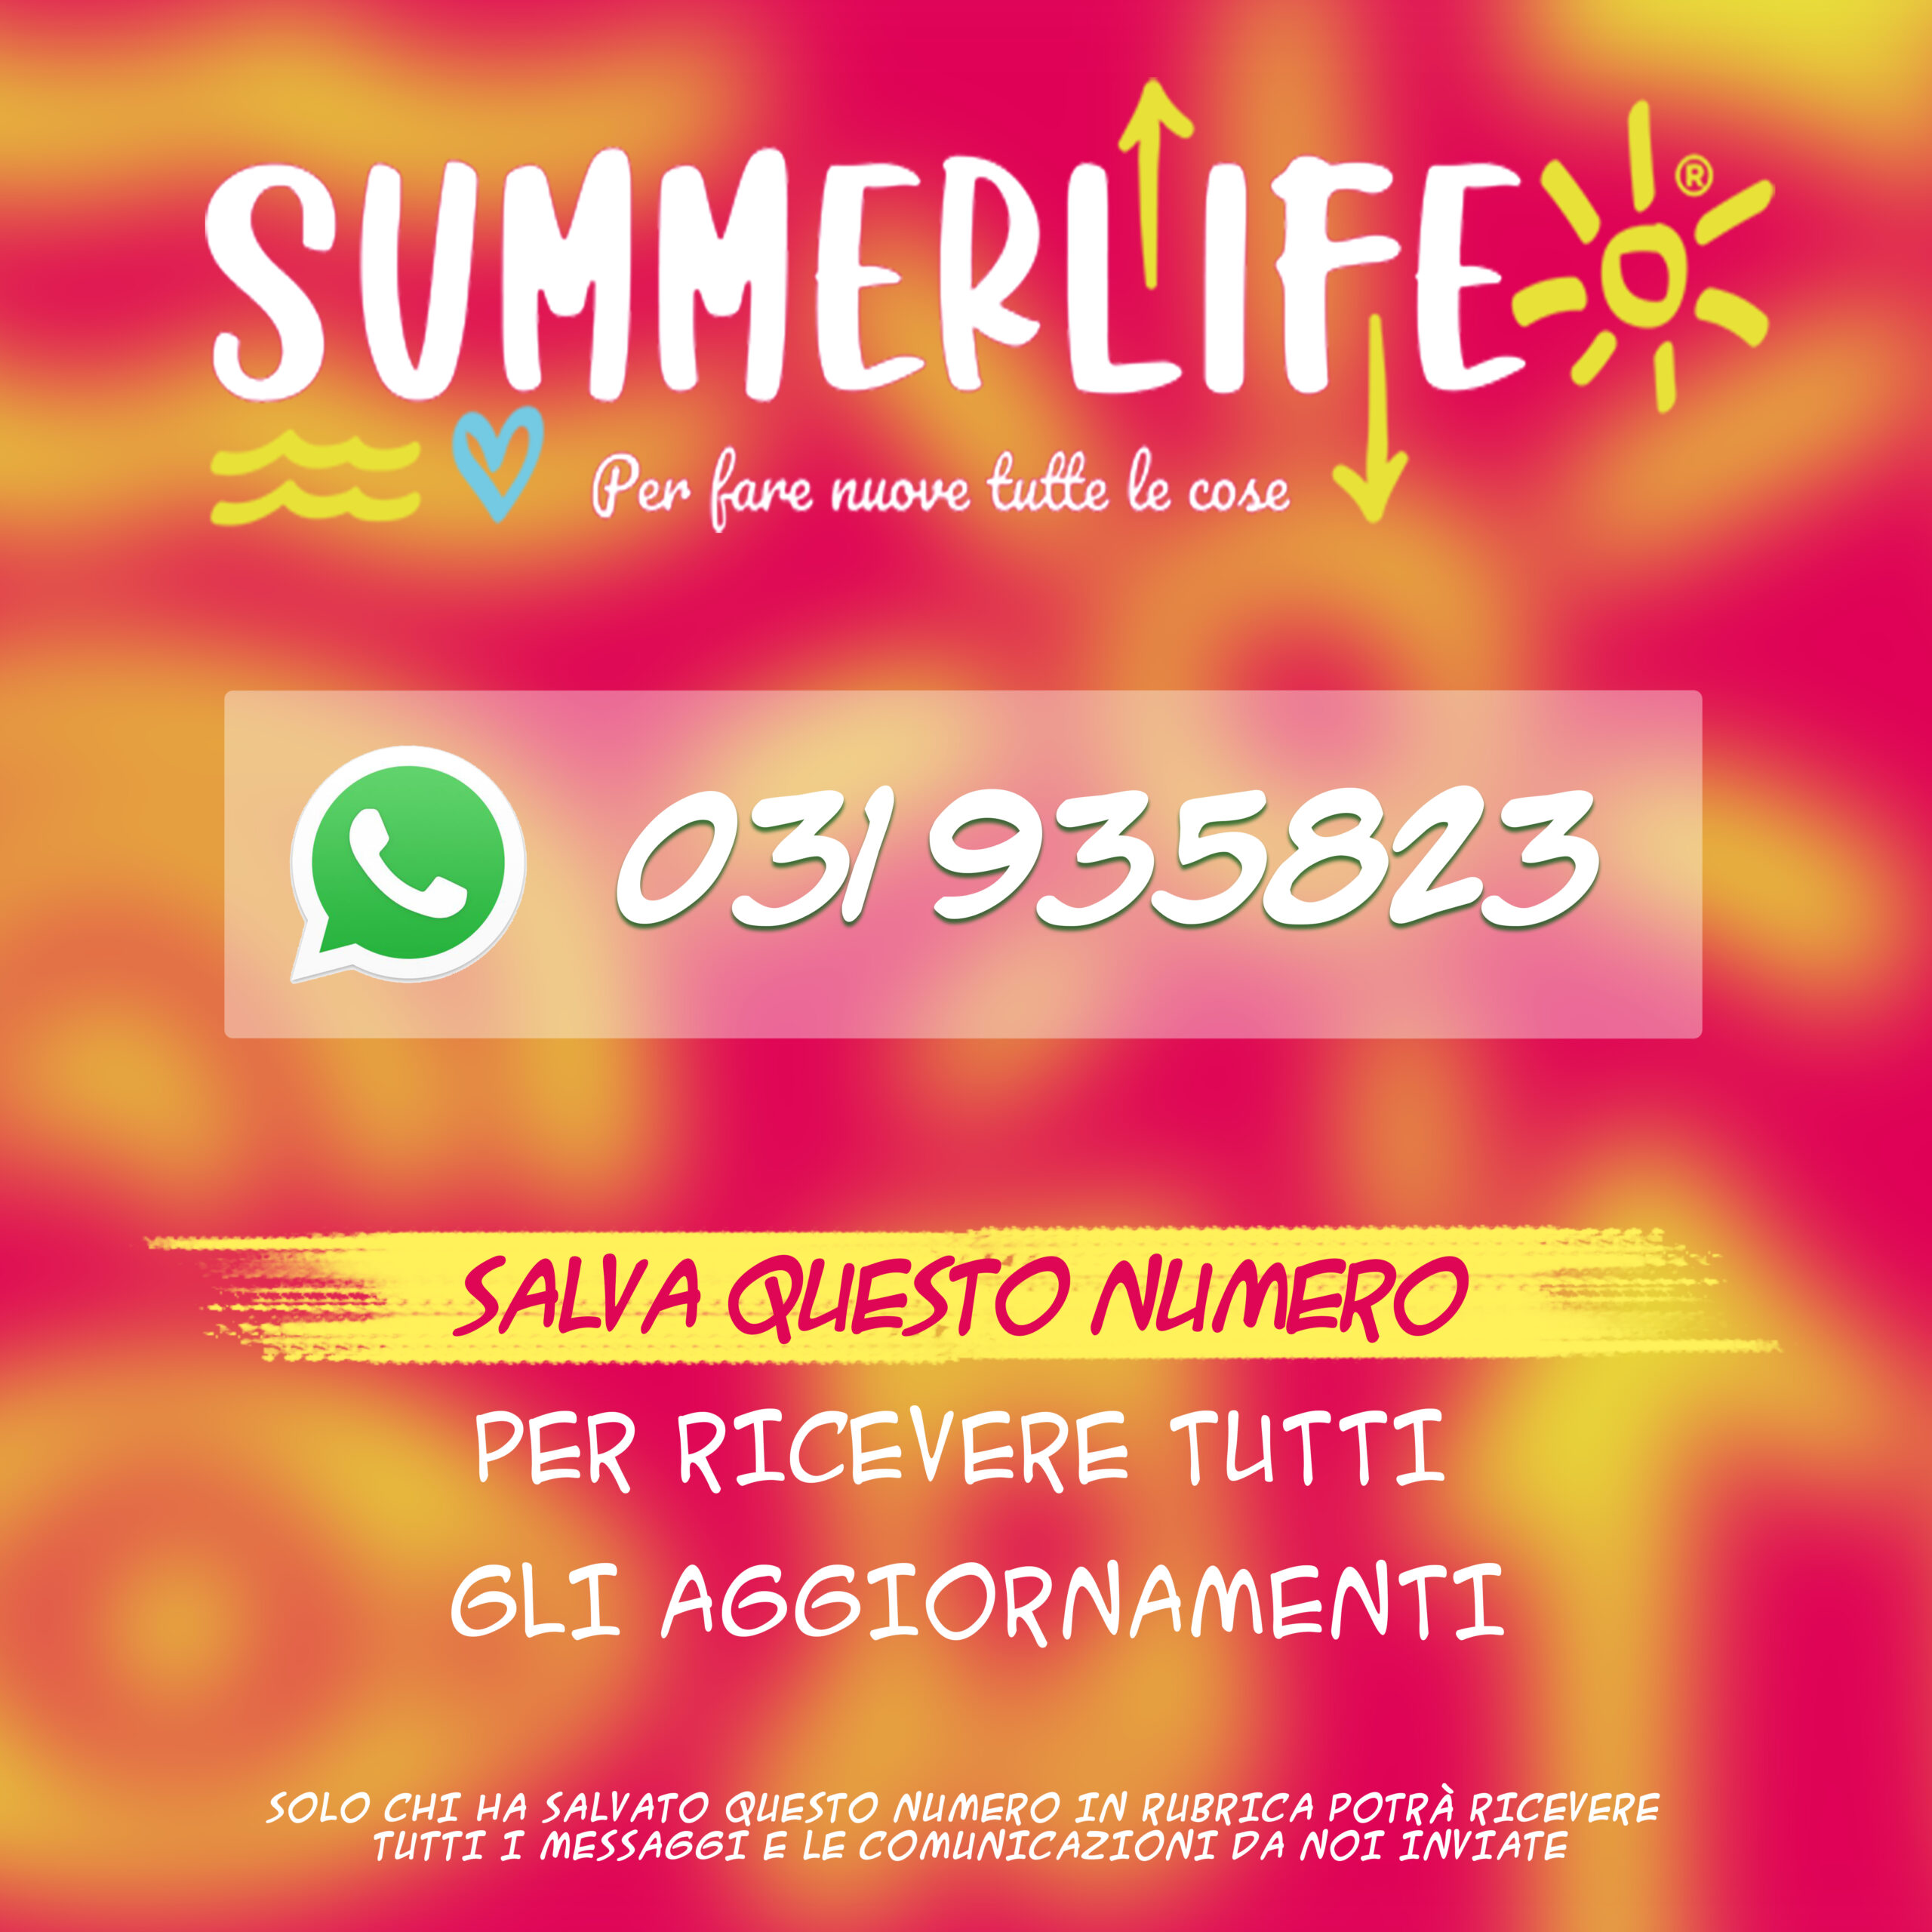 Summerlife 2020 - Whatsapp